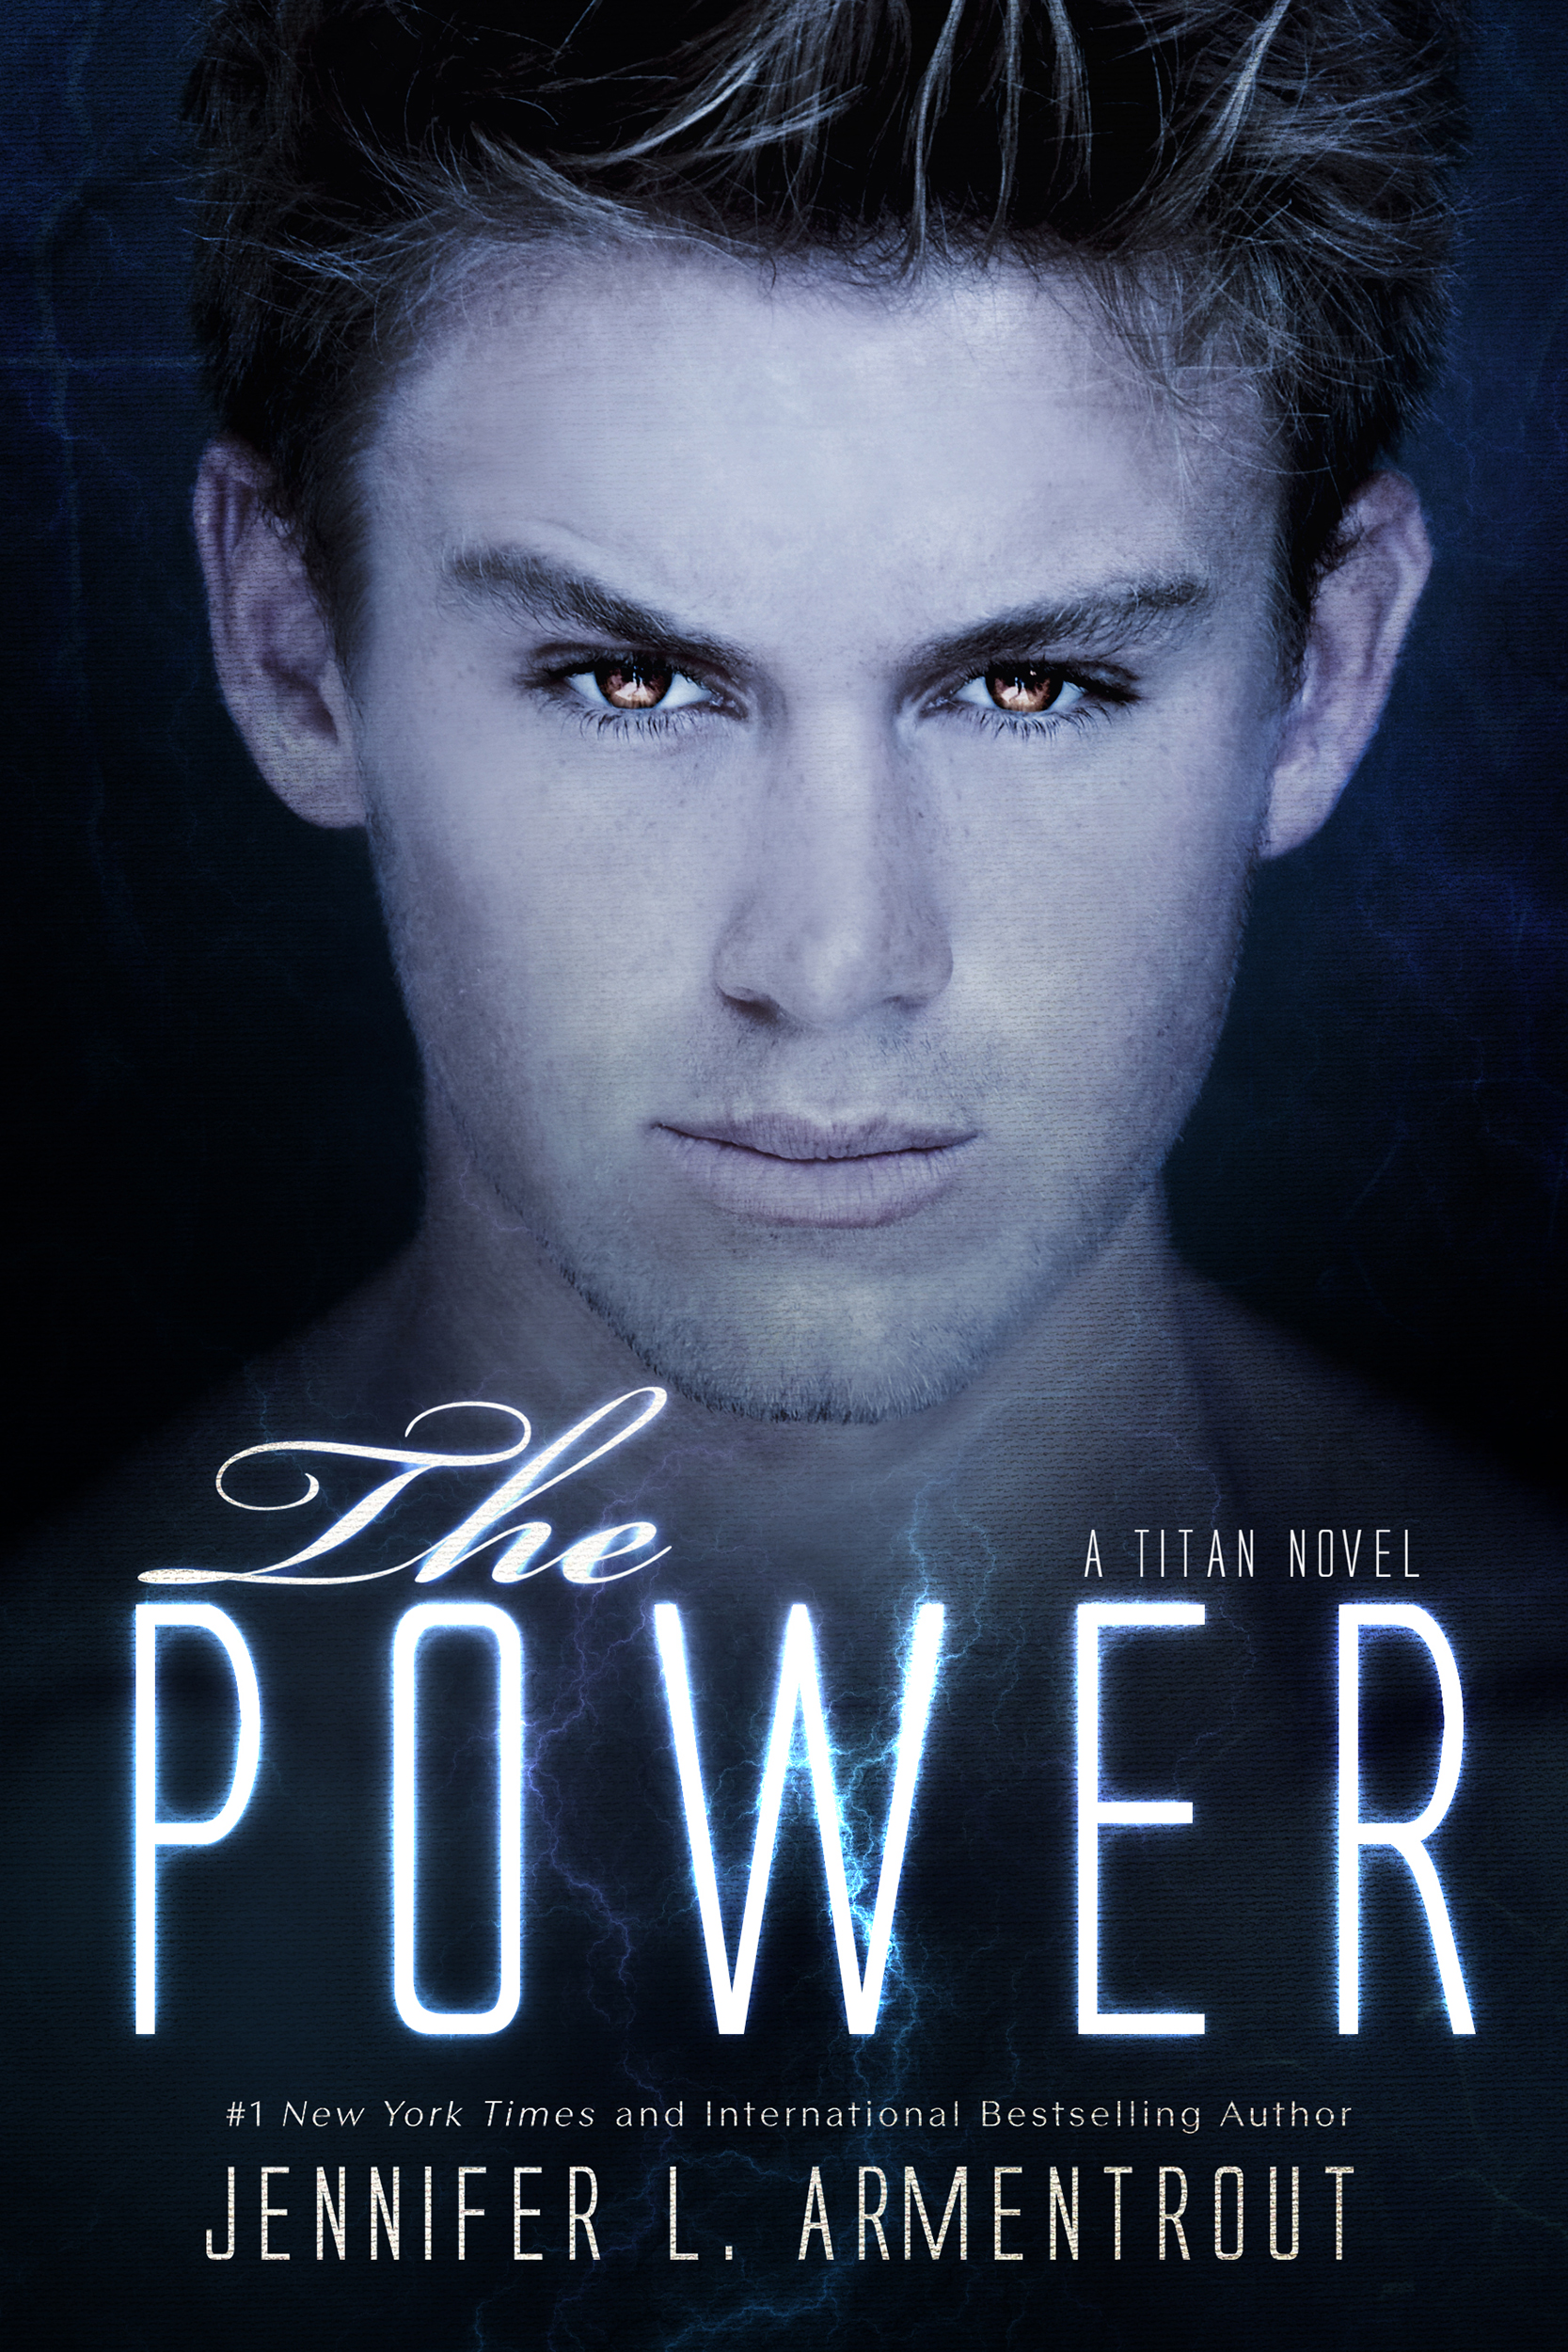 The Power by Jennifer L. Armentrout